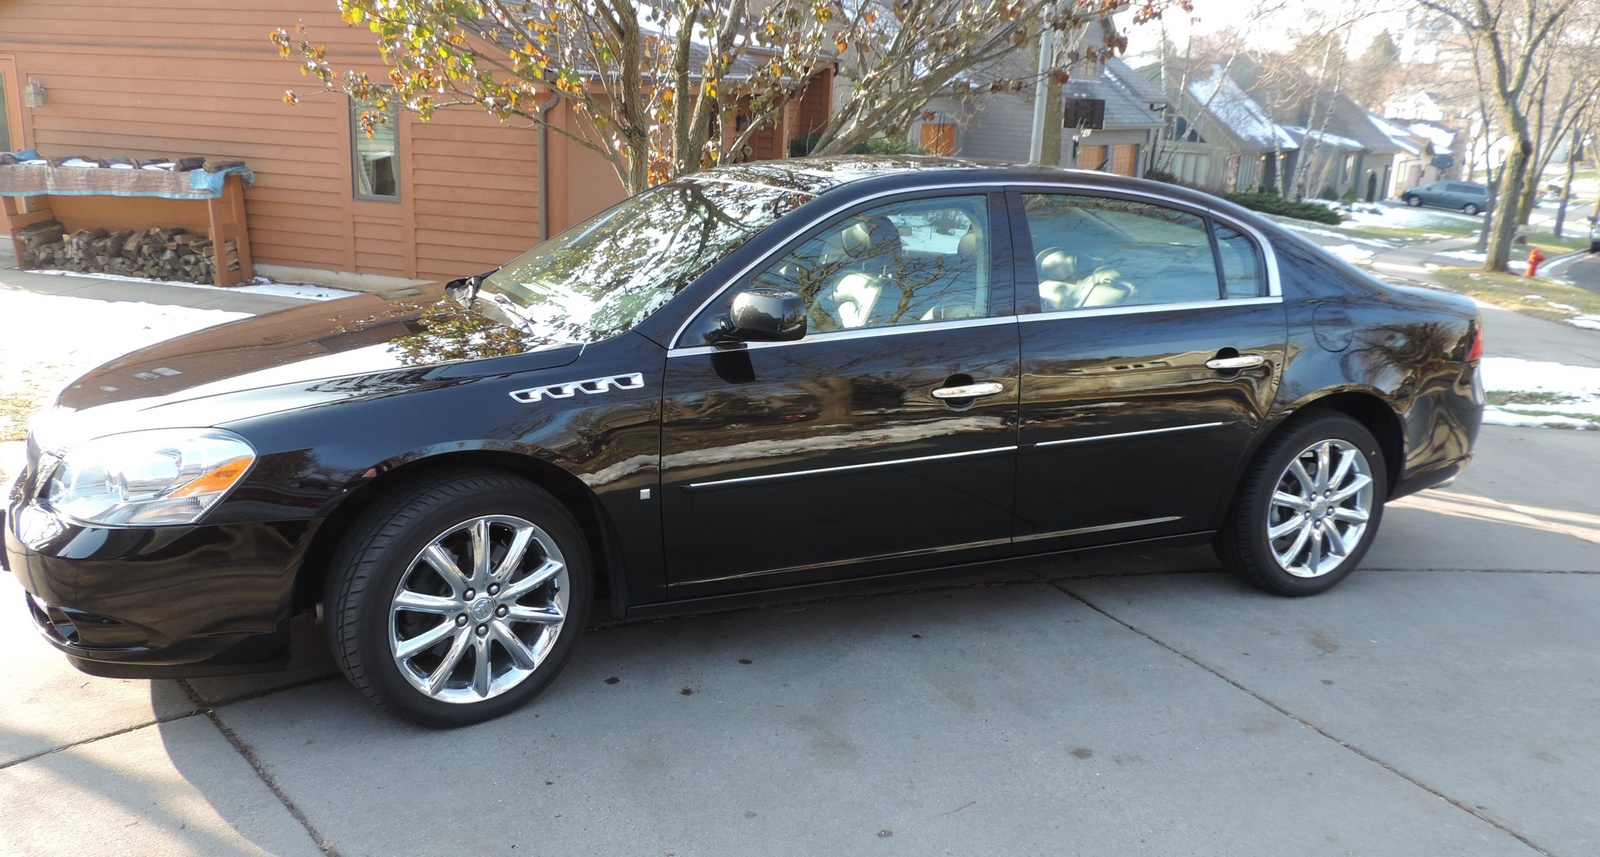 Buick Lucerne Cxs Pic on 2007 Buick Lacrosse Rate